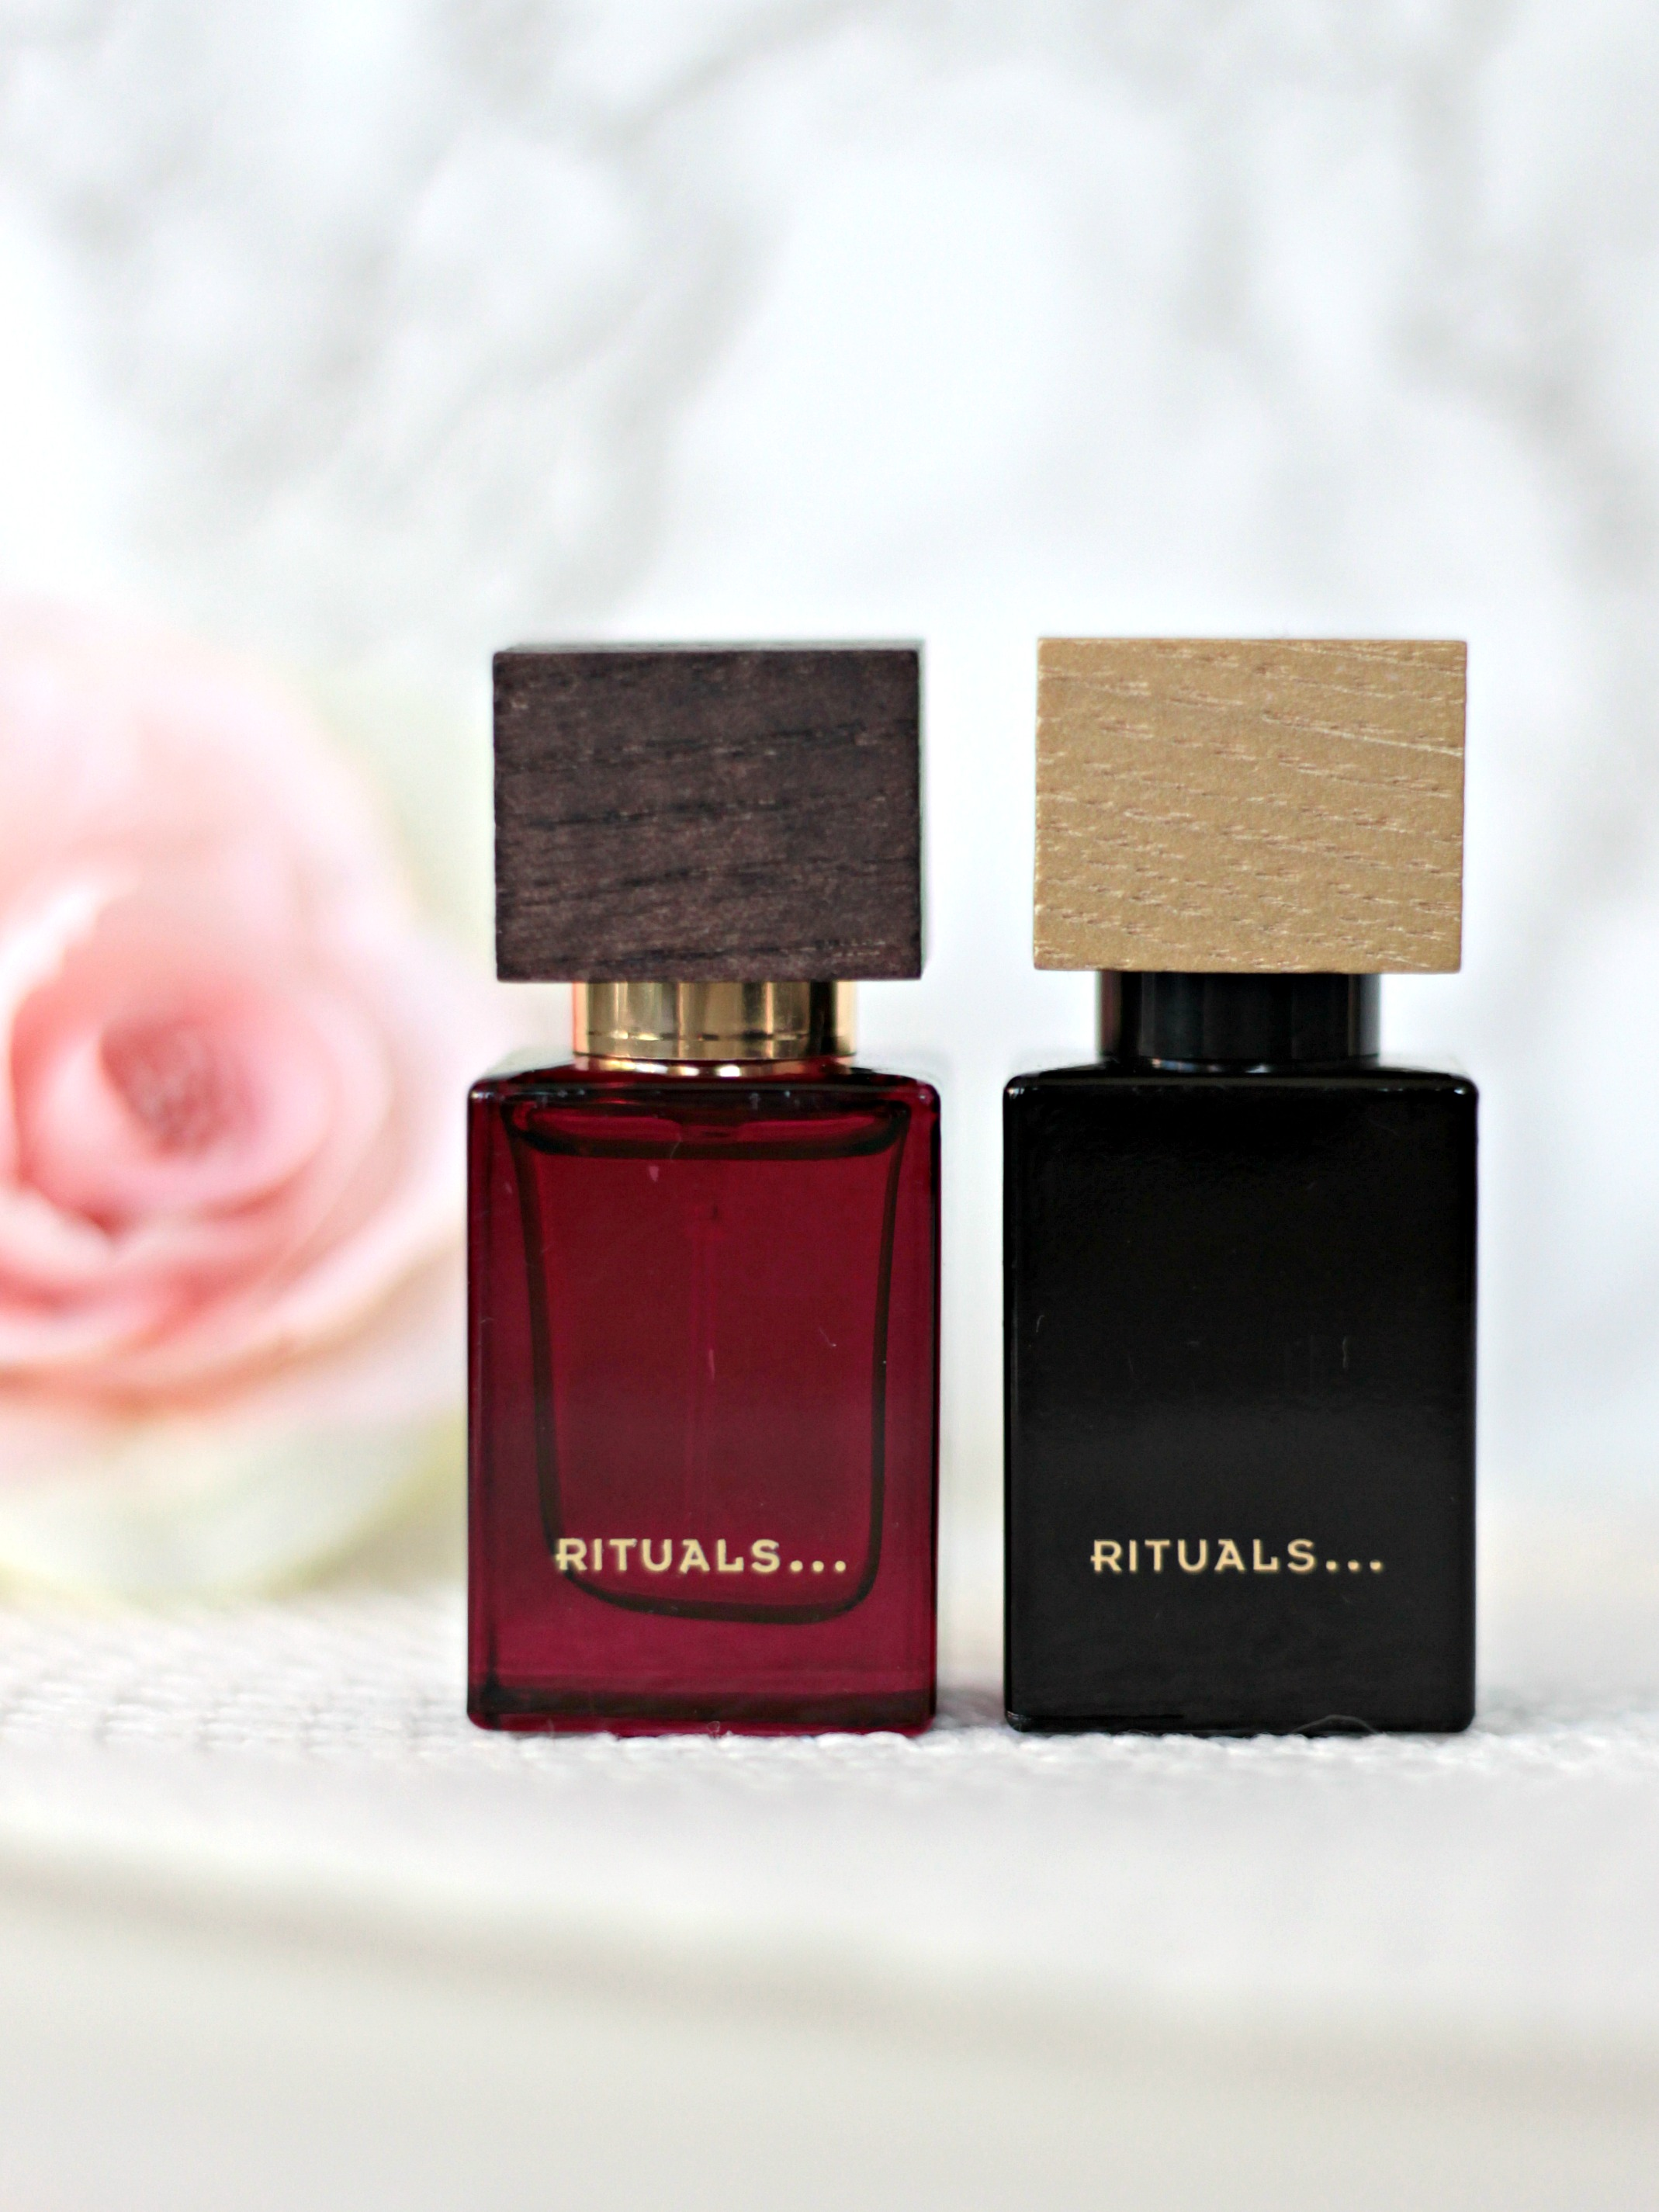 rituals parfum eau d 39 orient voyage en indie. Black Bedroom Furniture Sets. Home Design Ideas